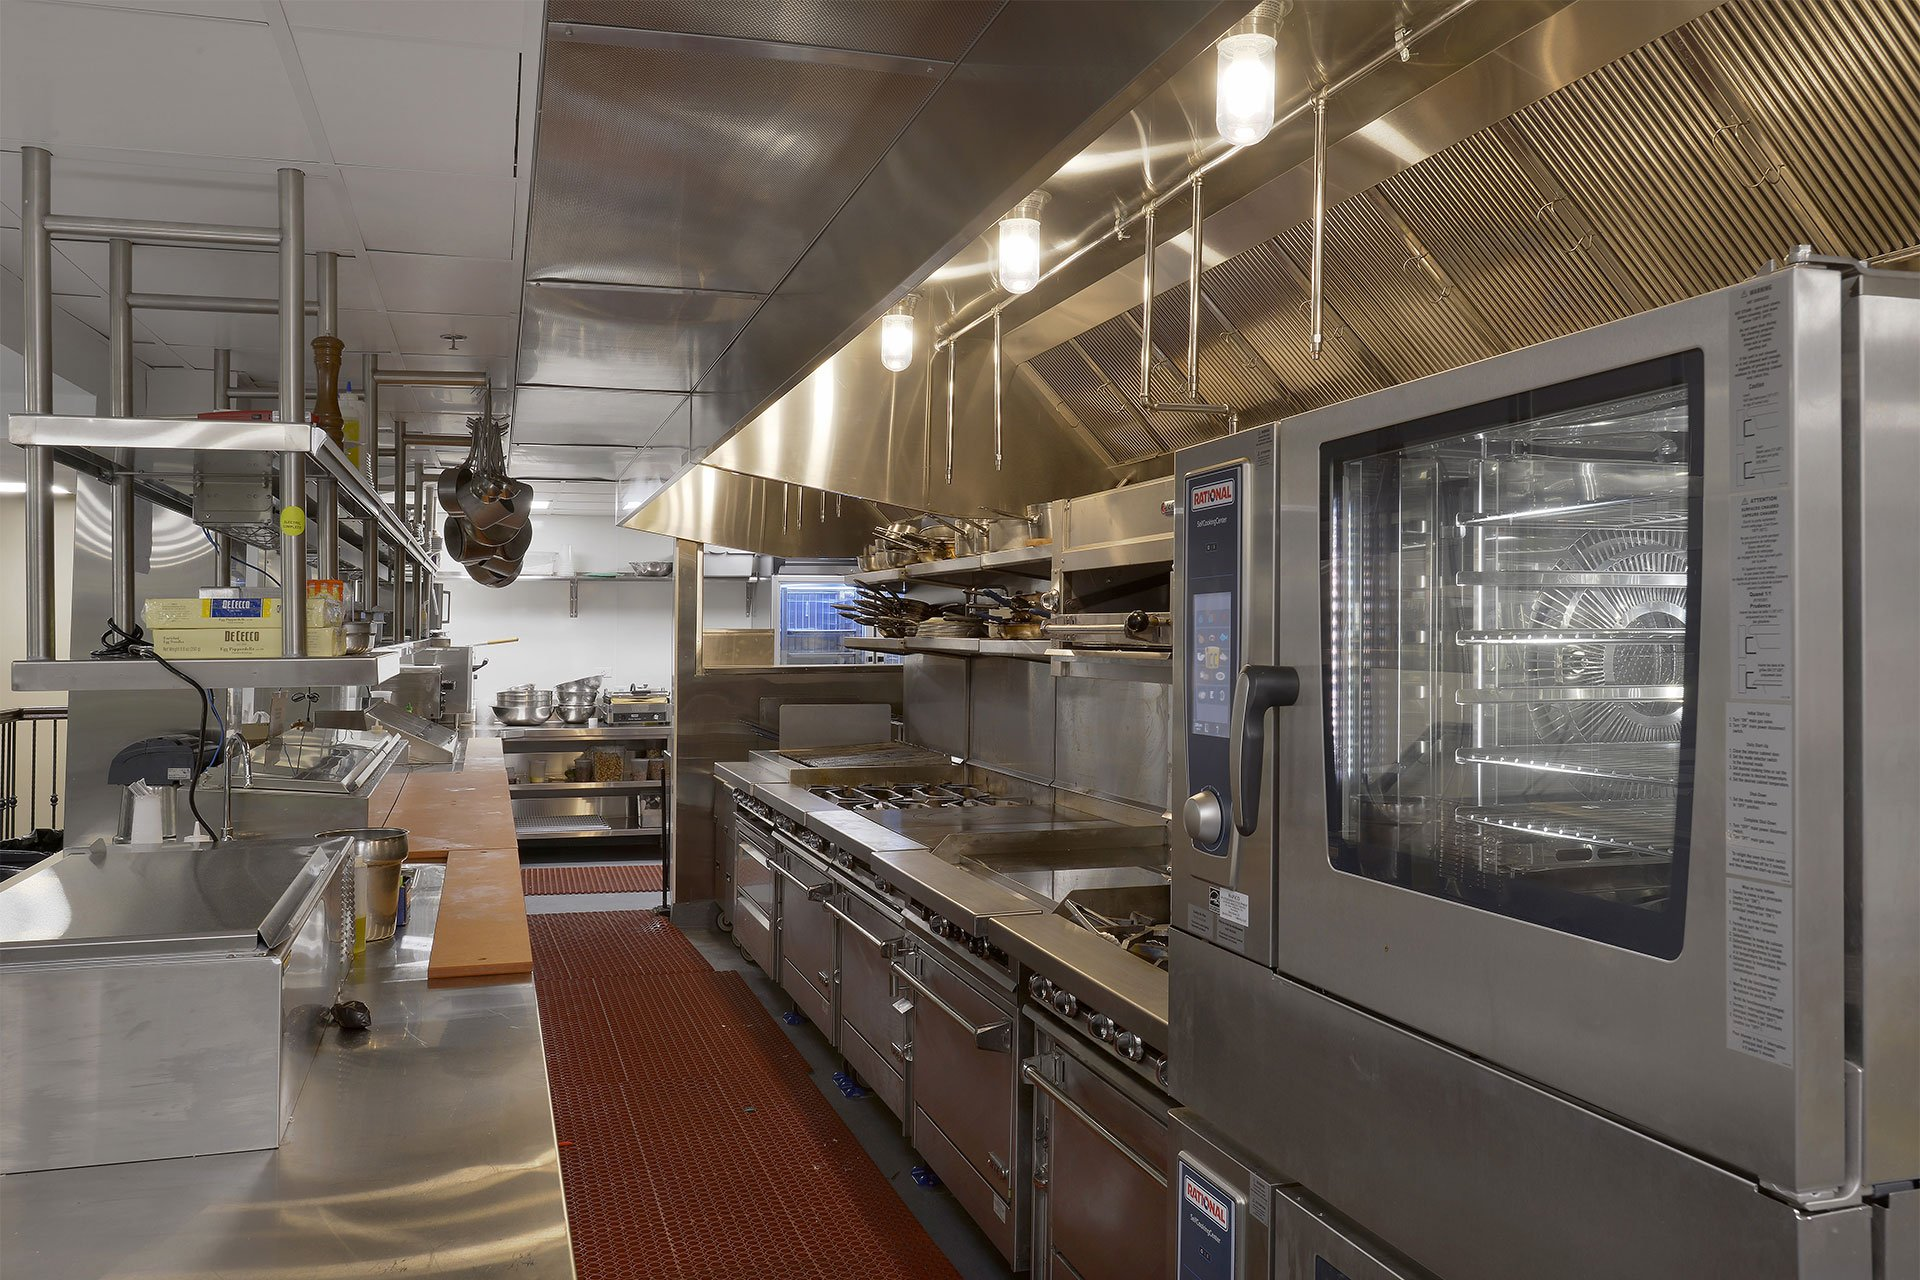 murphy-brothers-contracting-commercial-ardsley-country-club-interior-kitchen